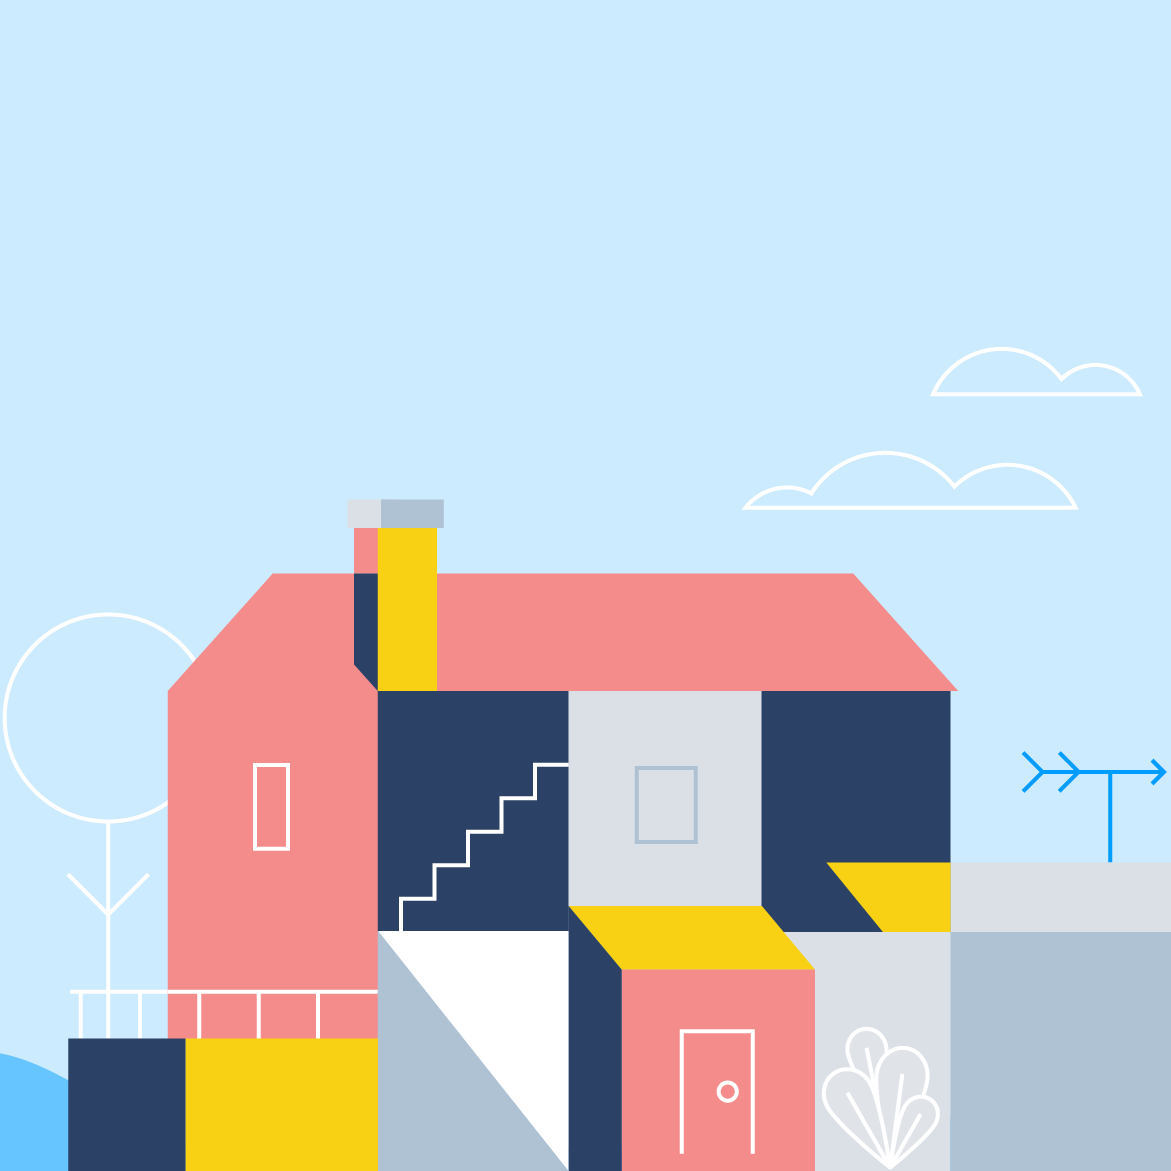 Nest Developers programme supports individuals interested to explore new product integration for connected homes.